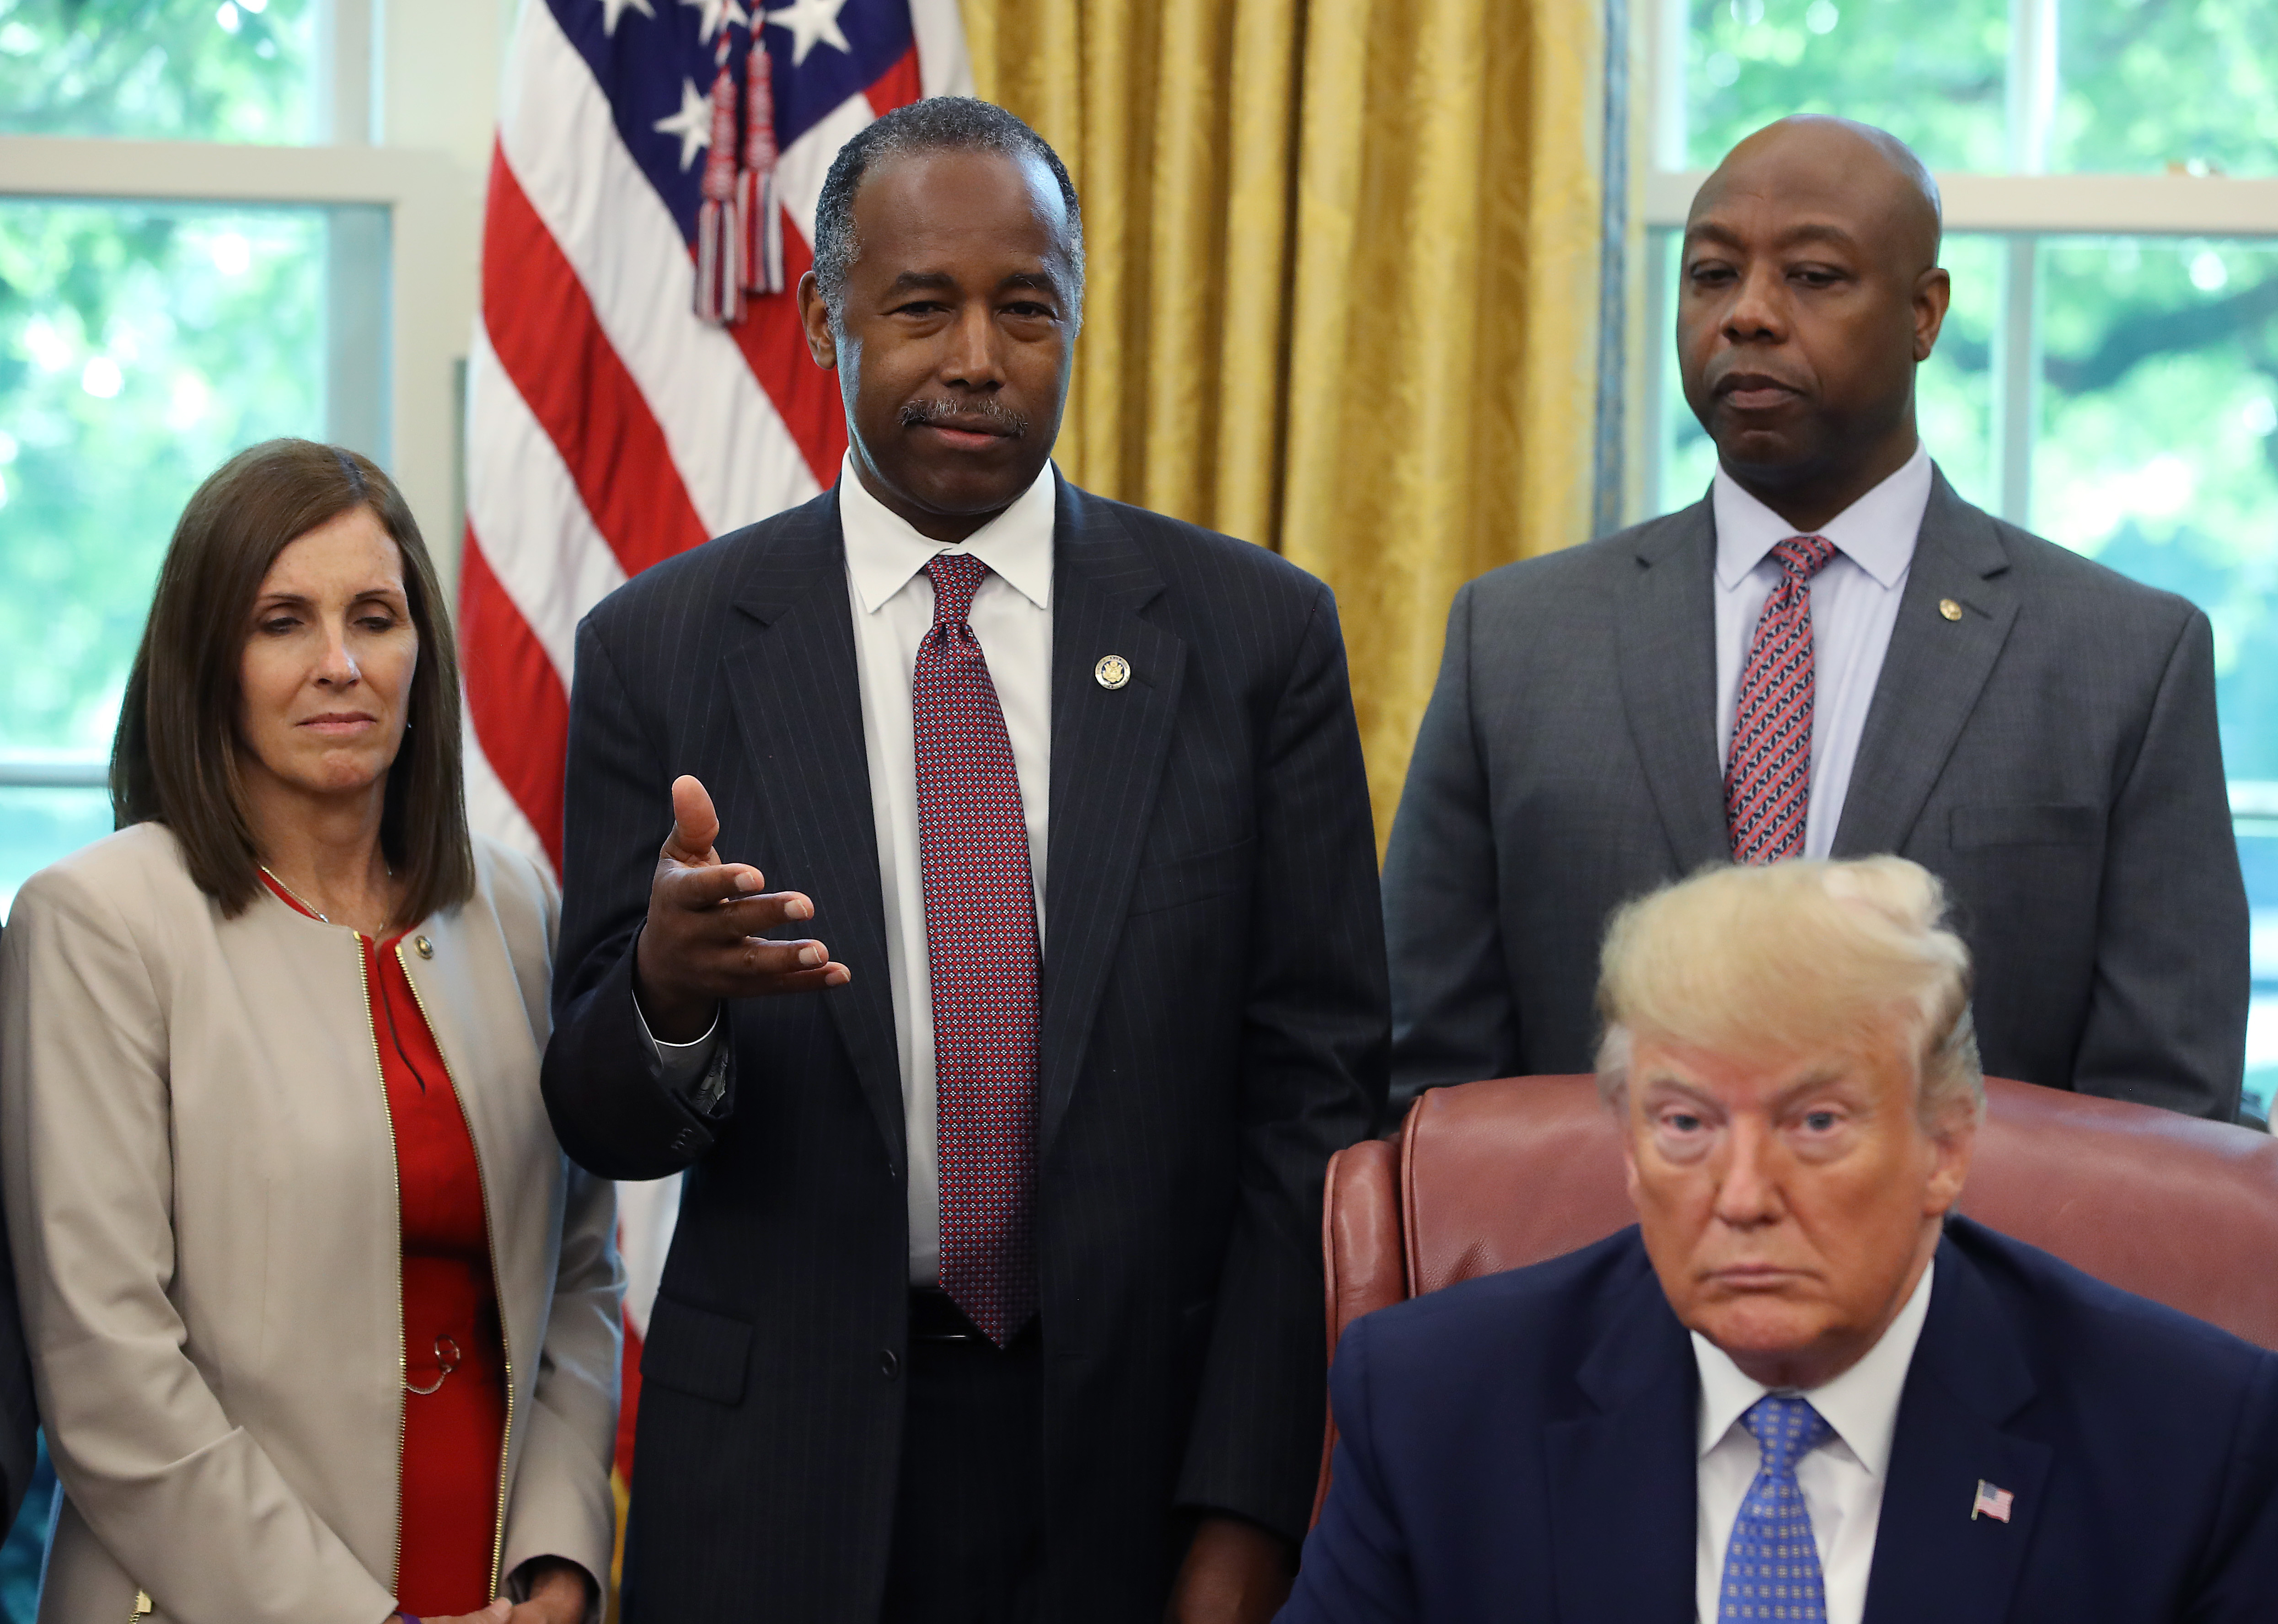 WASHINGTON, DC - JUNE 25: Housing and Urban Development Secretary Ben Carson (2L) speaks before U.S. President Donald Trump signed an executive order establishing a White House Council on eliminating regulatory barriers to affordable housing, in the Oval Office at the White House on June 25, 2019 in Washington, DC. DC. The council, which will be made up of members of eight federal agencies, will reportedly be tasked with easing local barriers to the private sector of creating housing, according to published reports. Also picture are Sen. Martha McSally (R-AZ) (L) and Sen. Tim Scott (R-SC). (Photo by Mark Wilson/Getty Images)